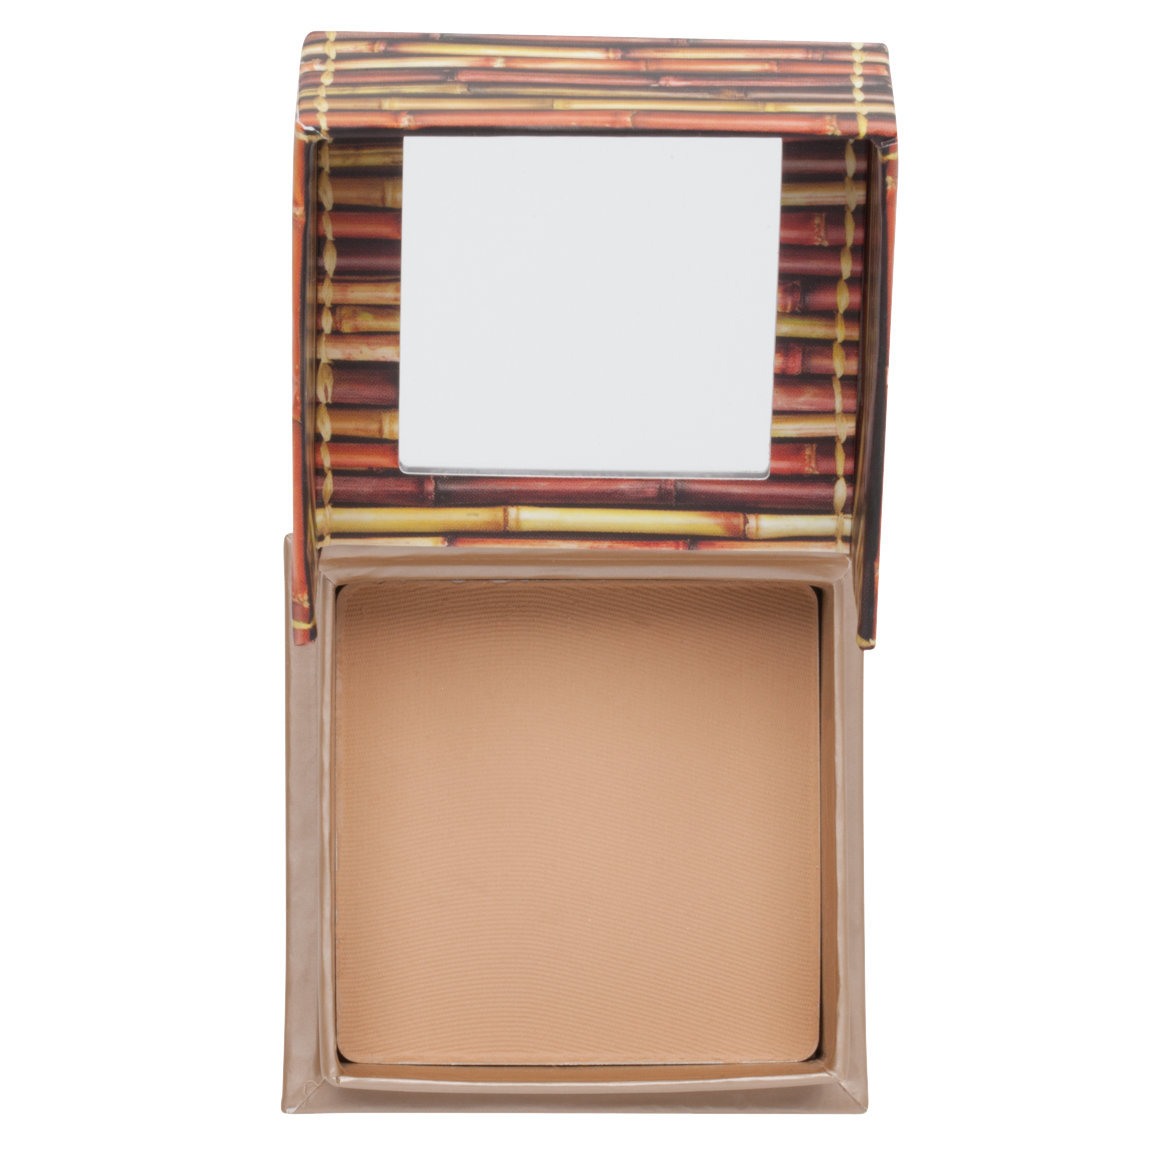 Benefit Cosmetics Hoola Matte Bronzer Lite - Light alternative view 1 - product swatch.